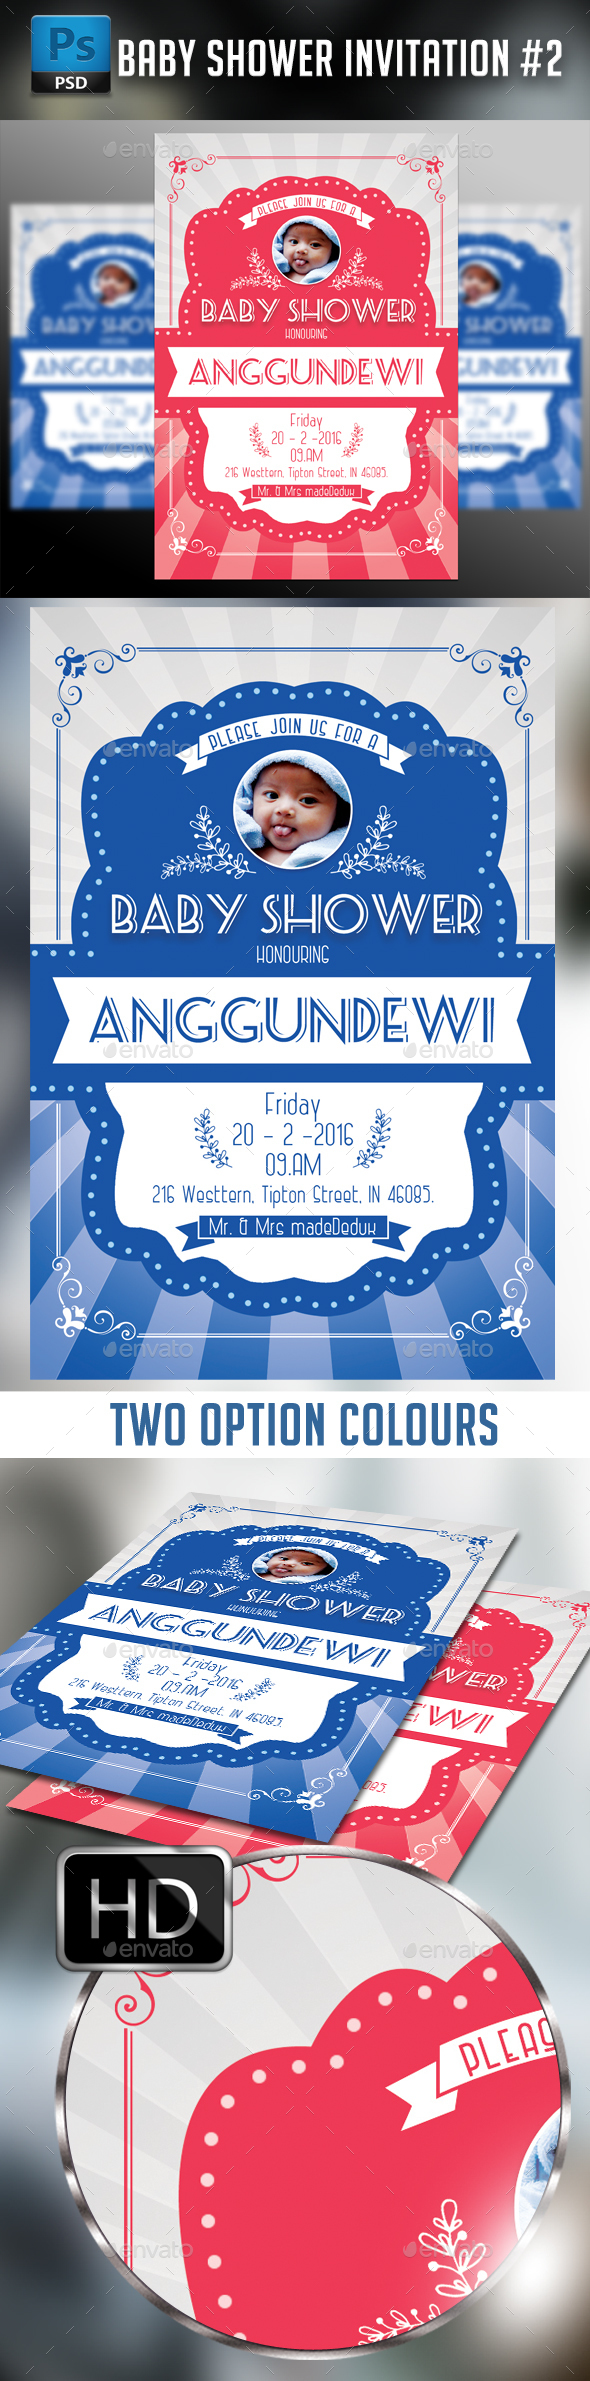 Baby Shower Invitation #2 - Cards & Invites Print Templates